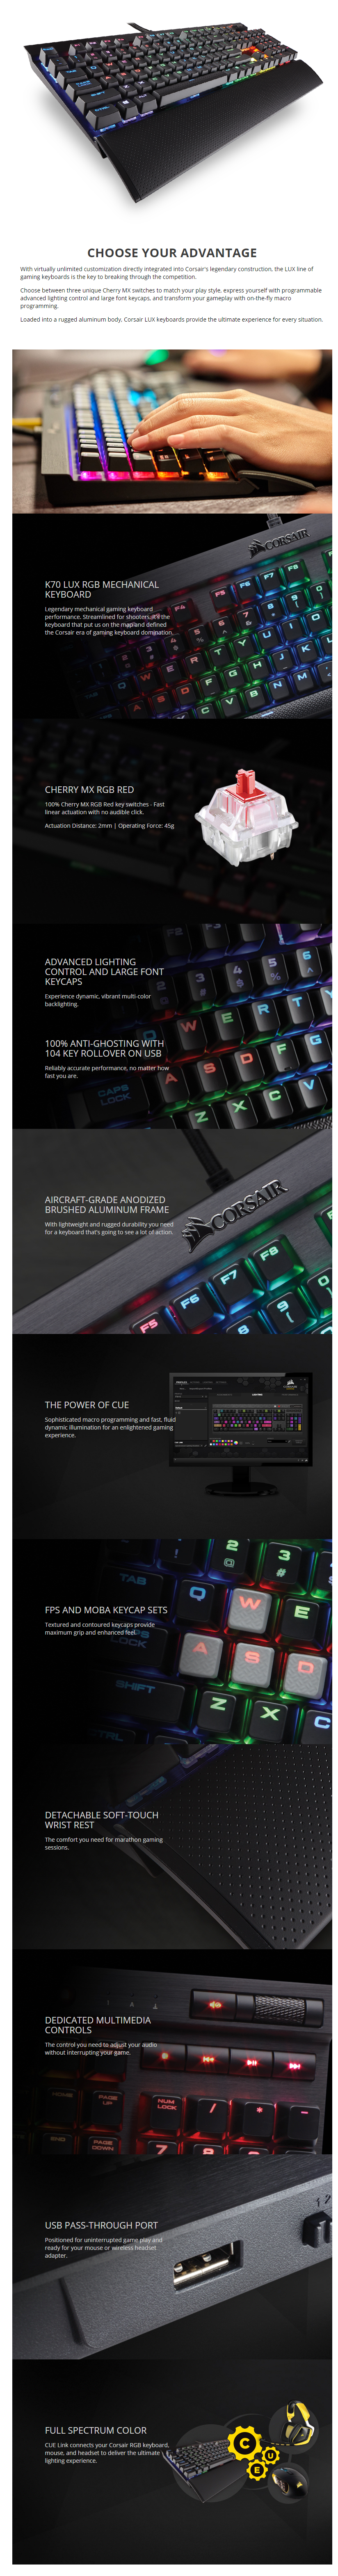 Corsair K70 Gaming Rgb Lux Cherry Mx Red Mechanical Keyboard Ch K65 Switch Manufacturer Specifications